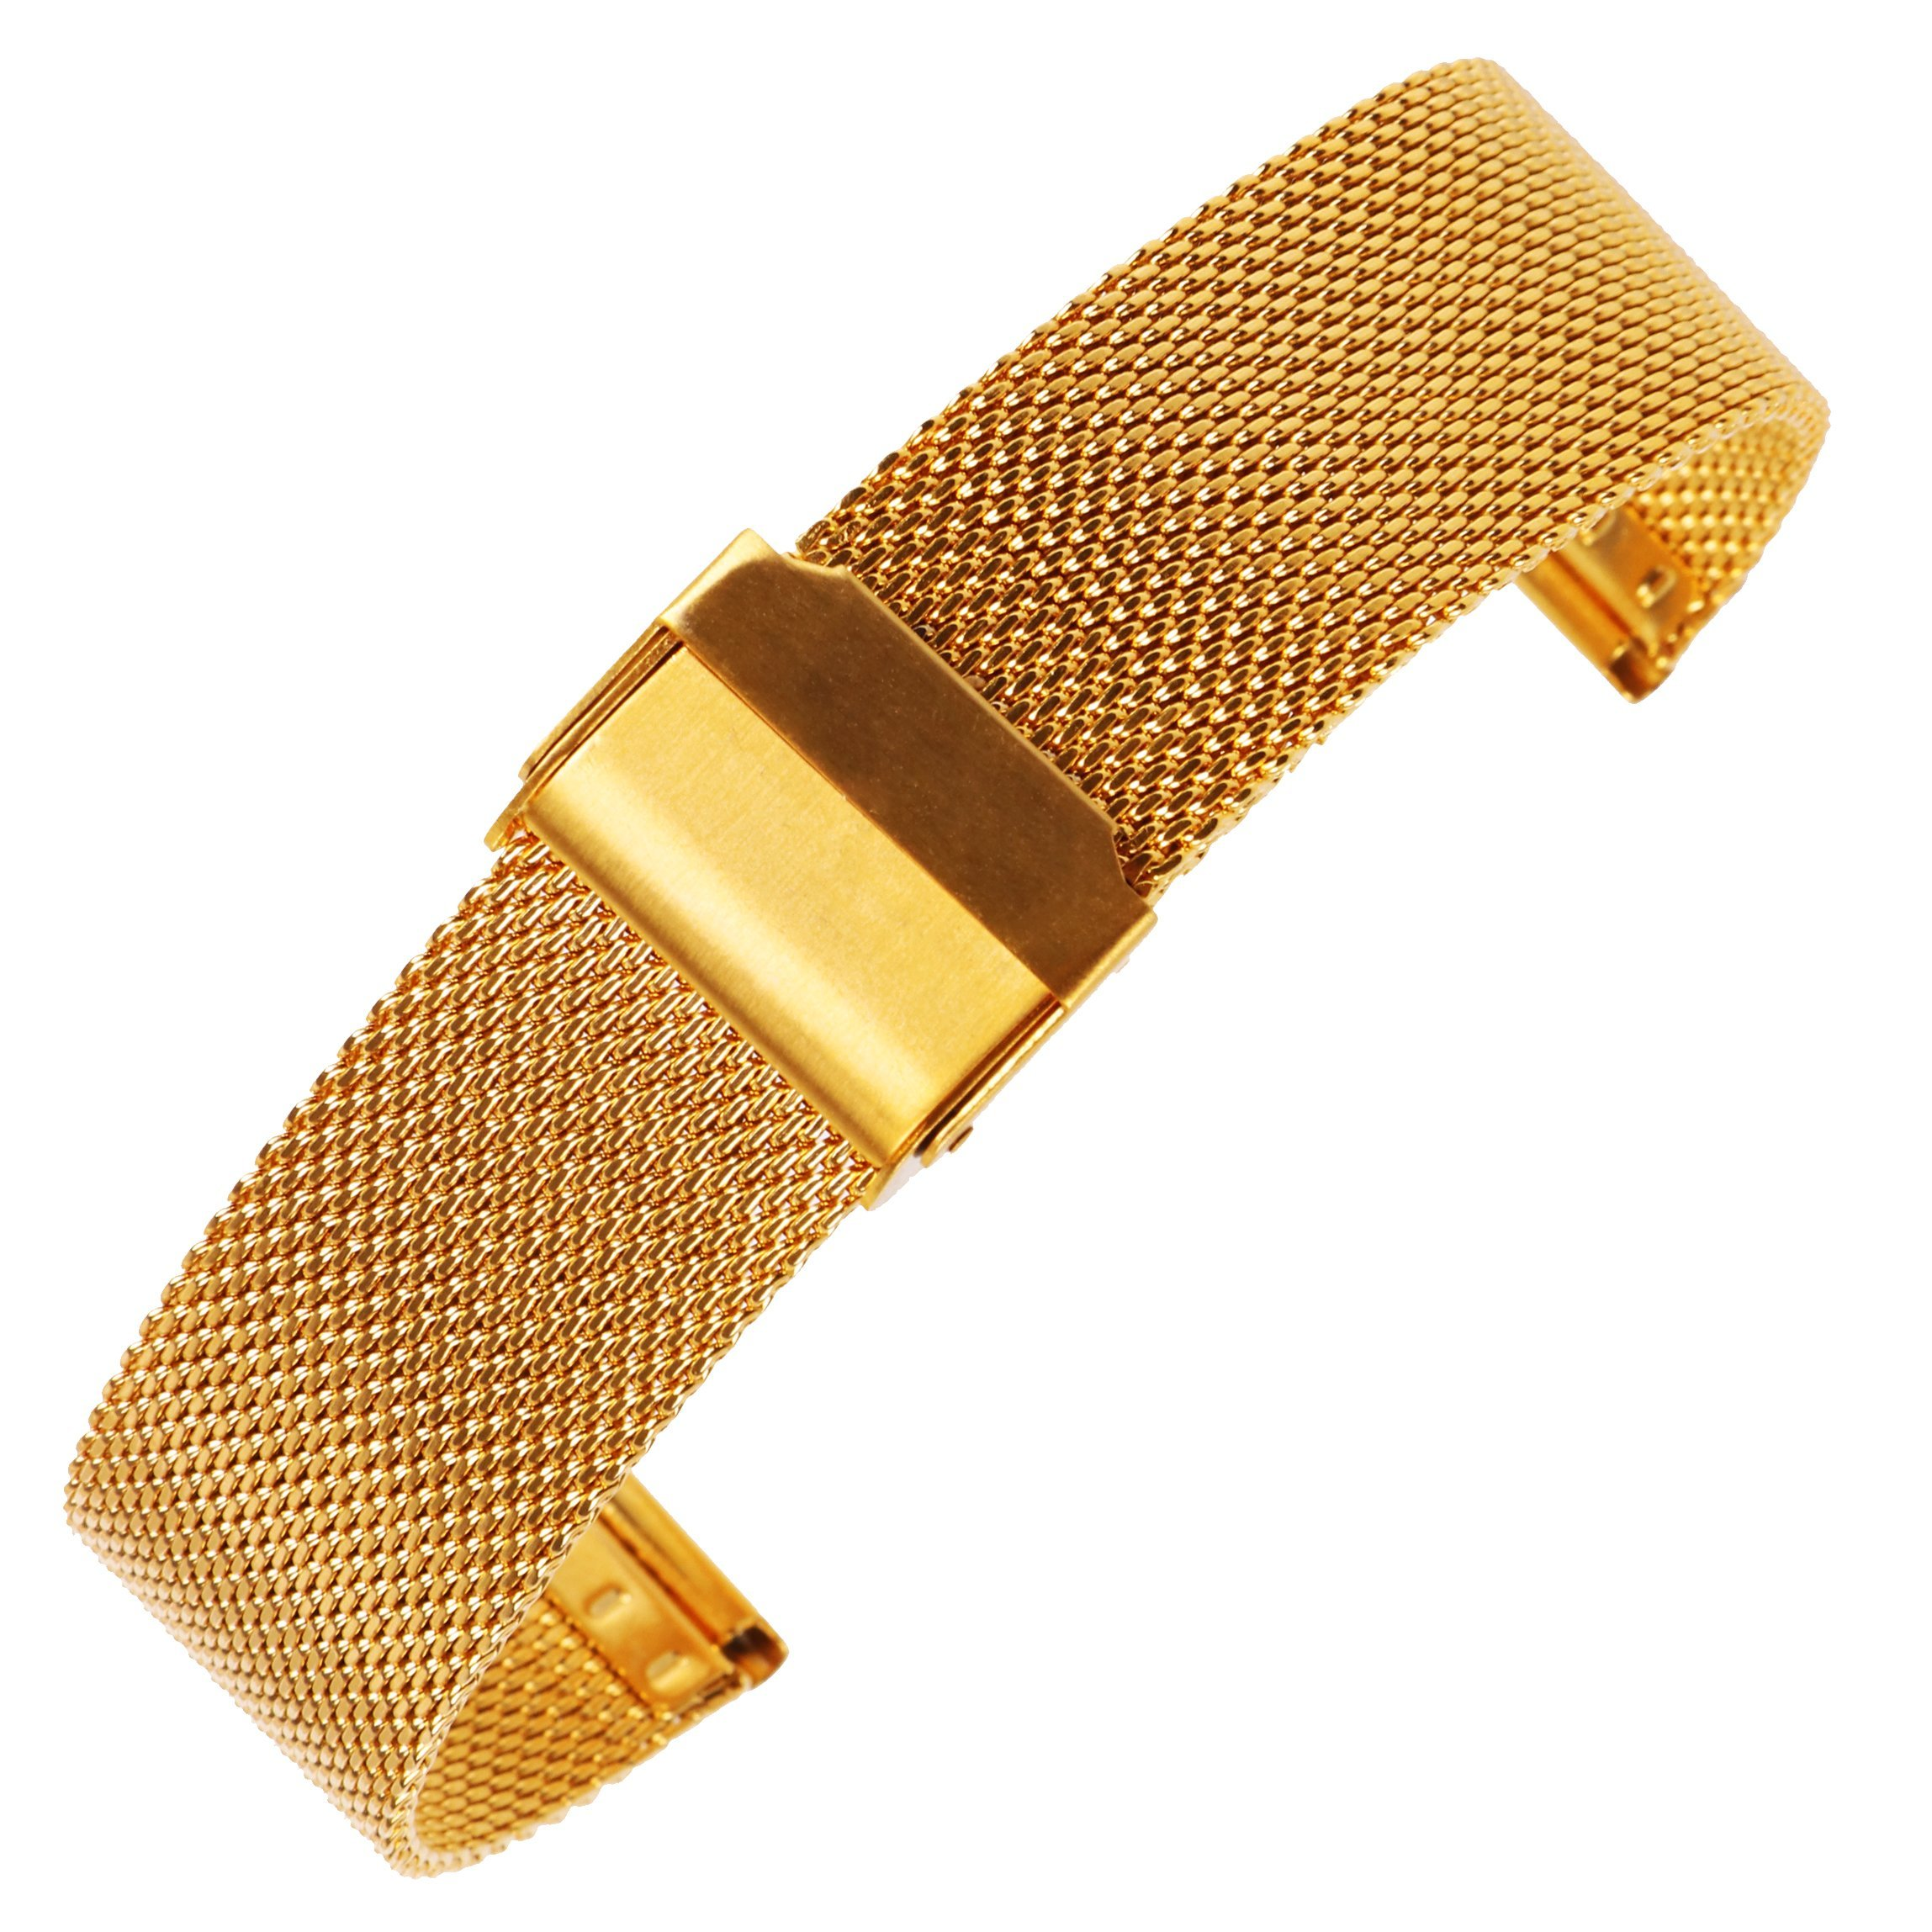 18mm Gold 304 Stainless Steel Mesh Watch Bracelet Chain Link Mesh Band Replacement for Business Watches